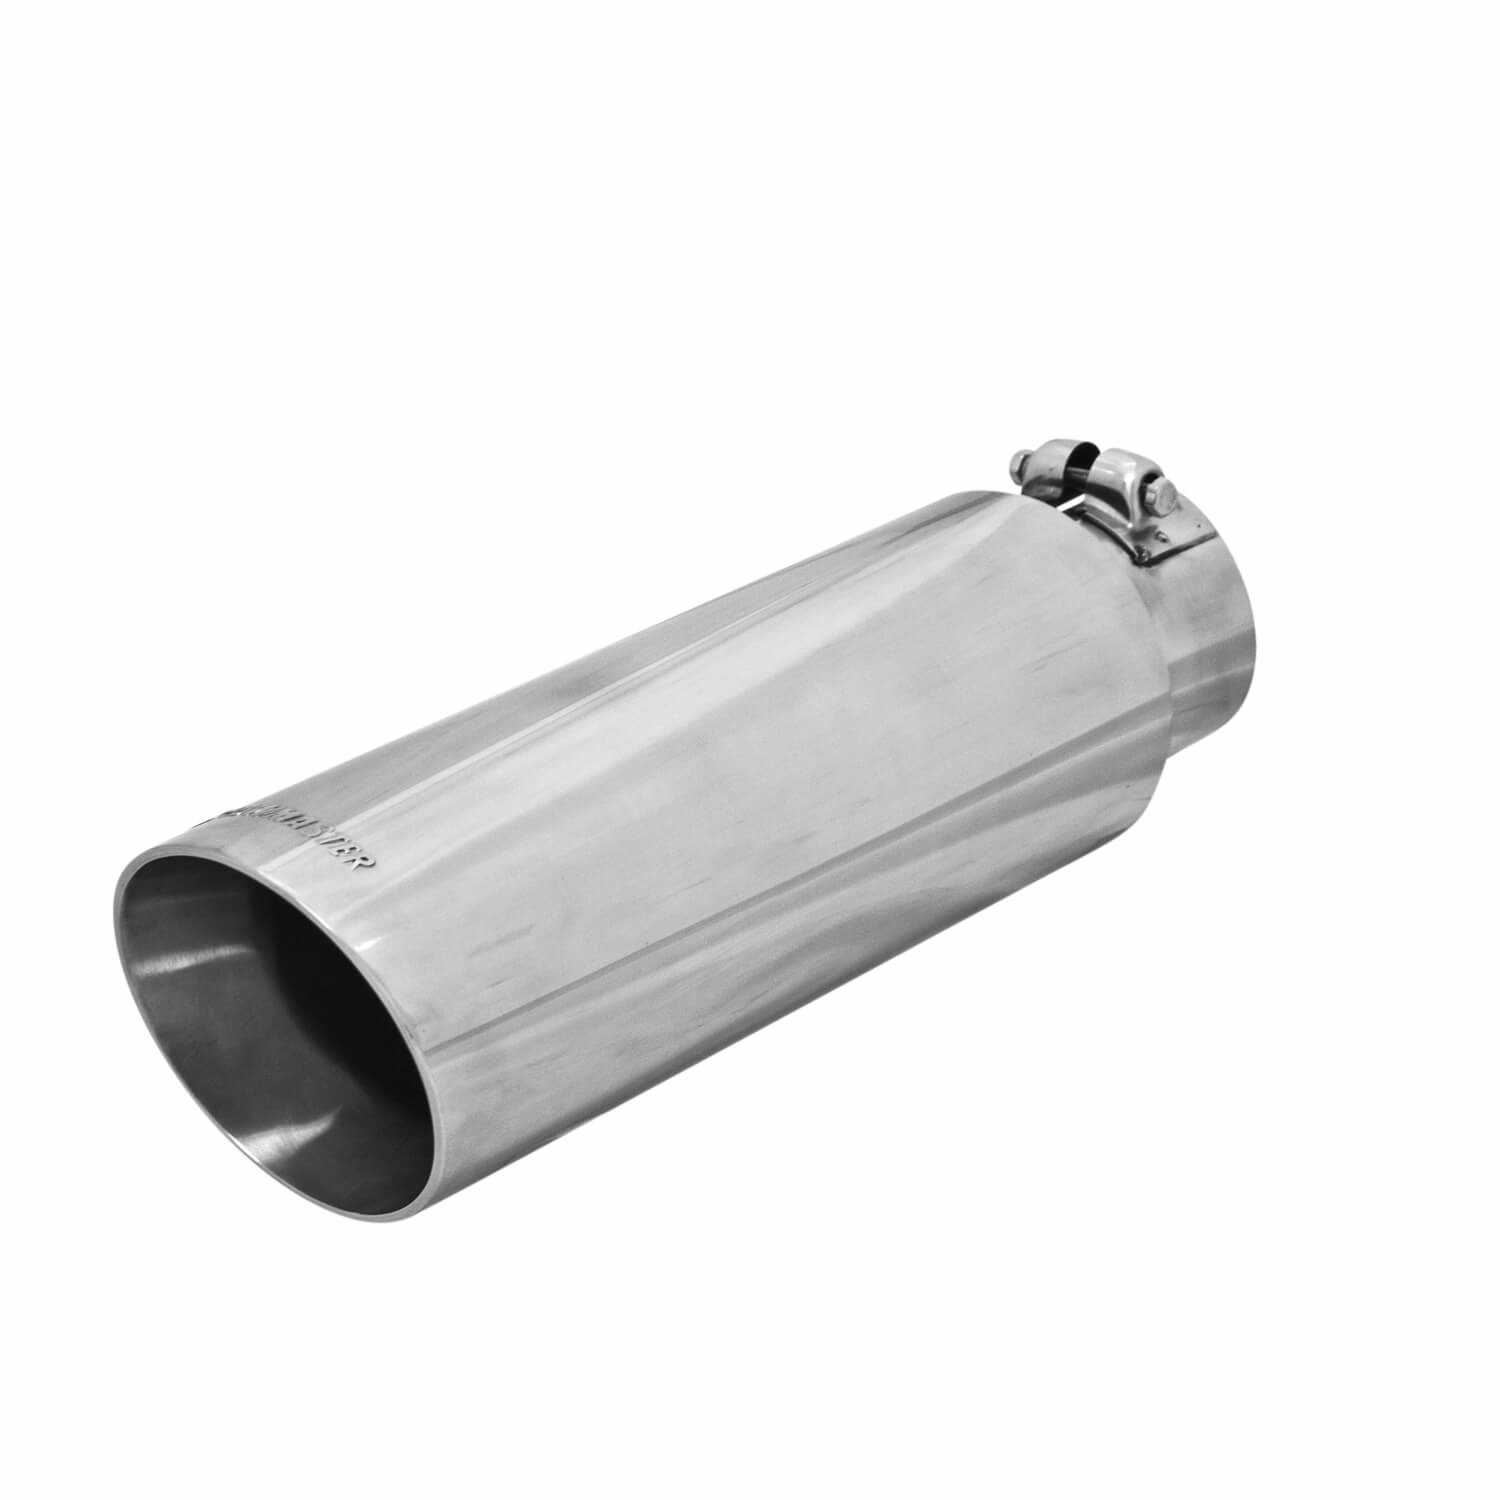 15398 Flowmaster Stainless Steel Exhaust Tip